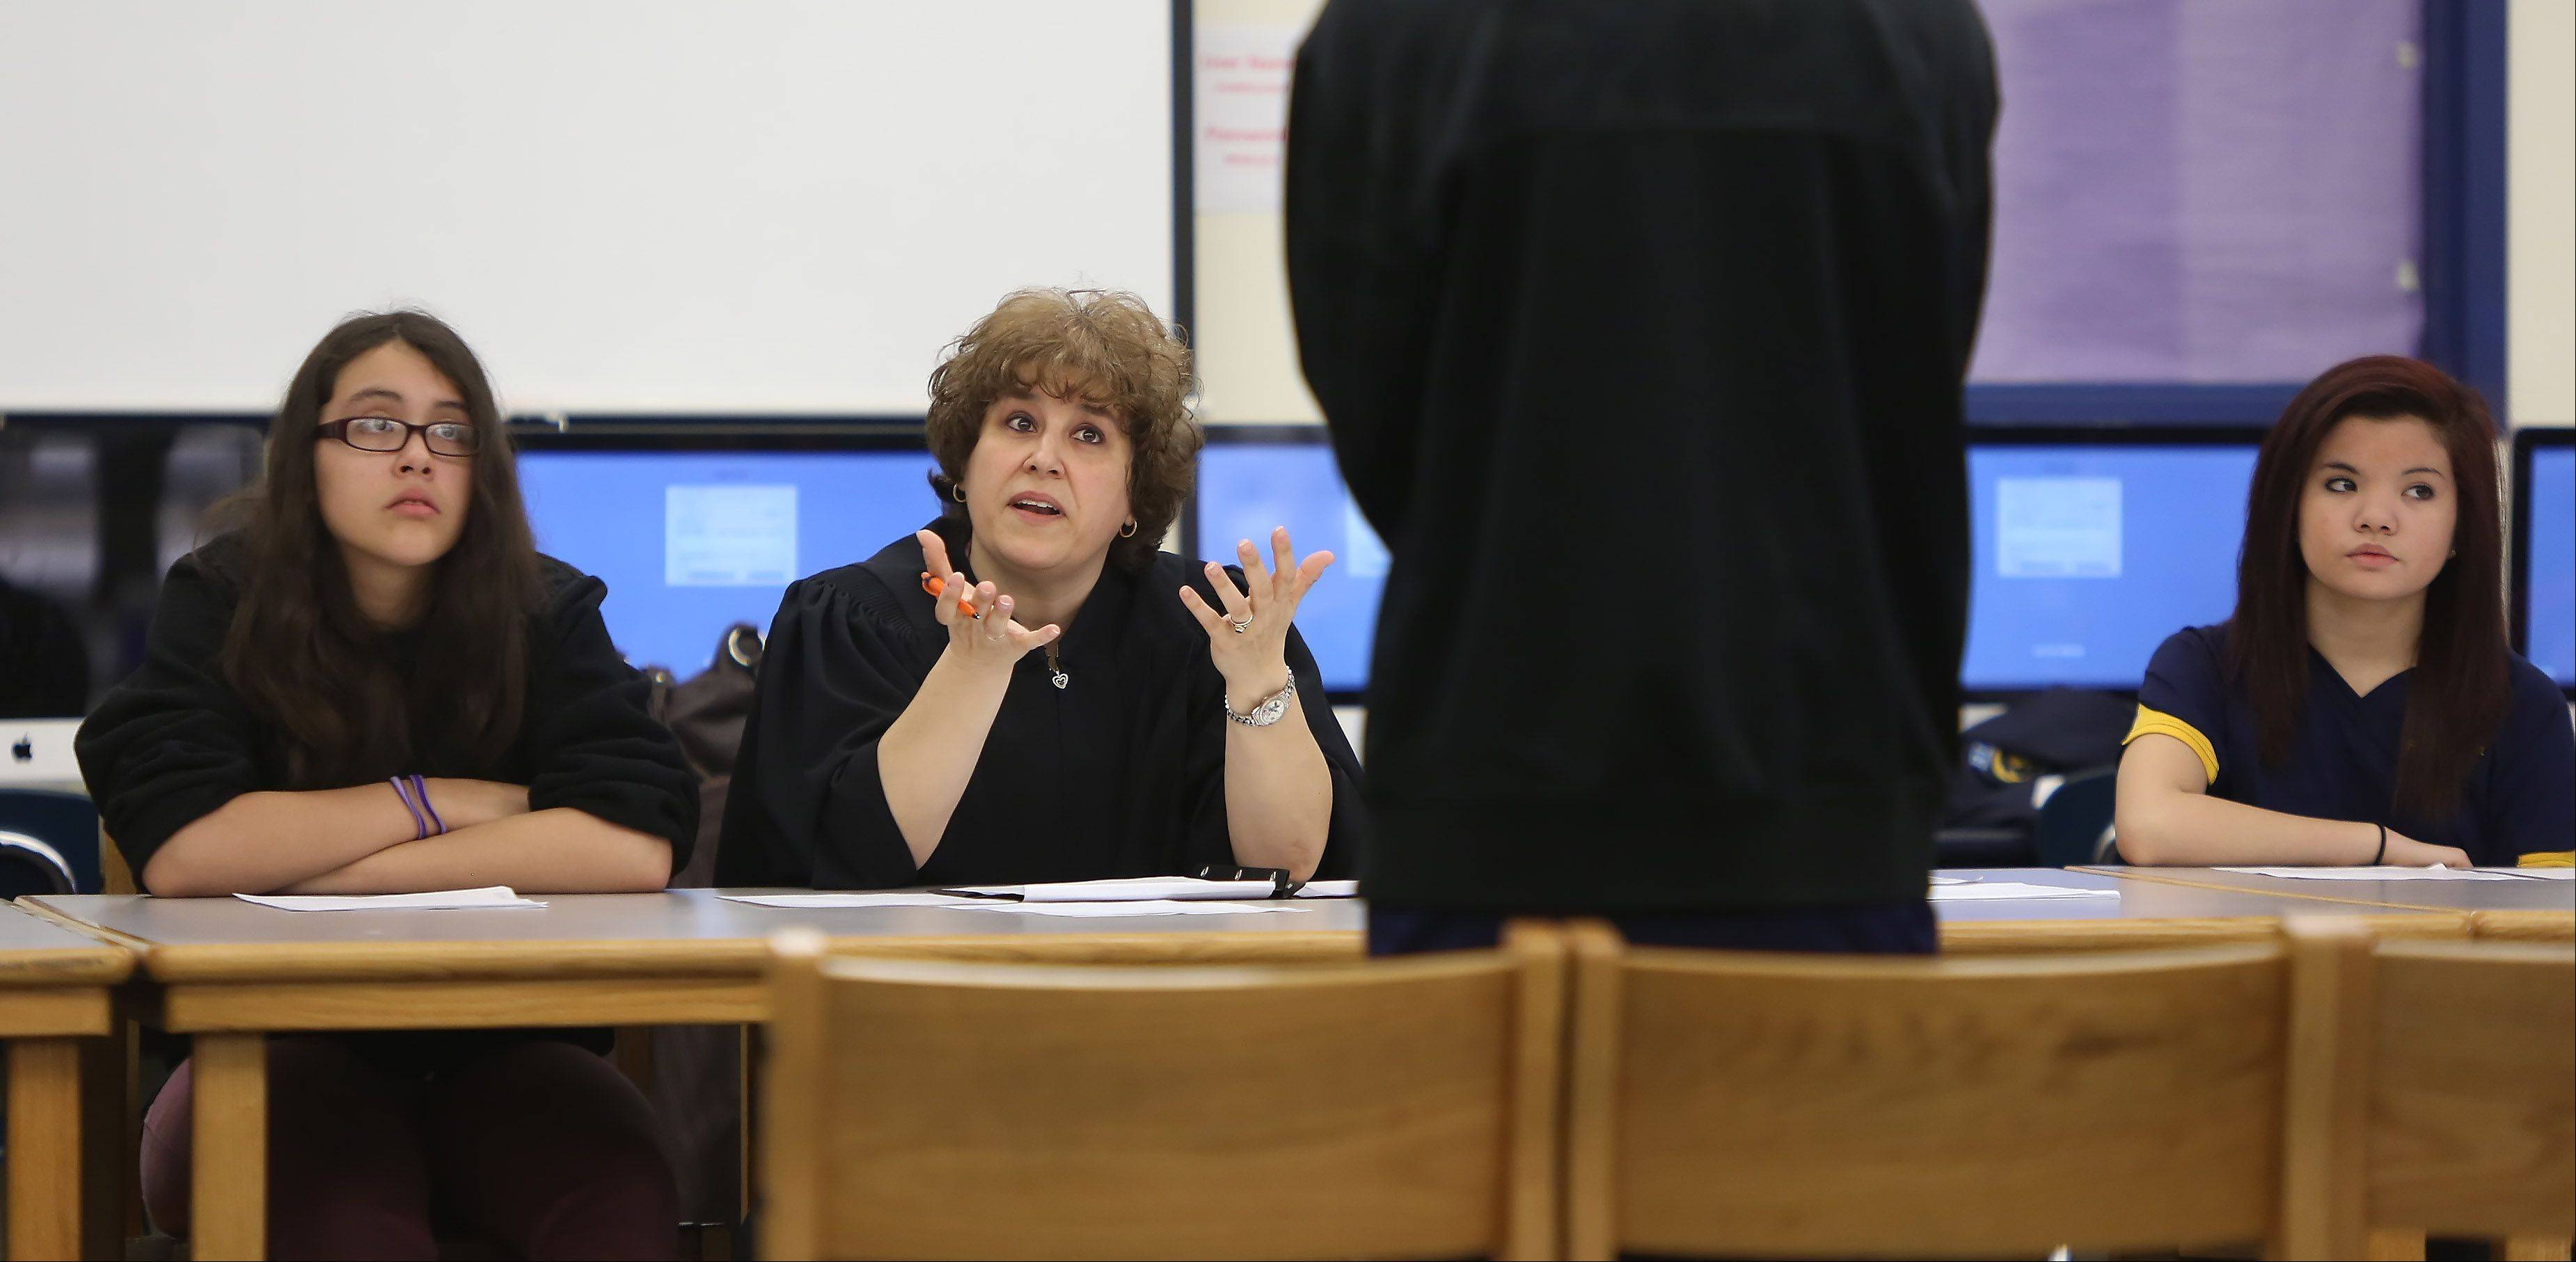 Attorney Lori Berdenis, of Round Lake Beach, acts as judge as jurors Ruby Guevara, left, and Makena Ridiros listen during Peer Court at Round Lake Middle School. The program is an alternative to suspension or other disciplinary measures for students who qualify.